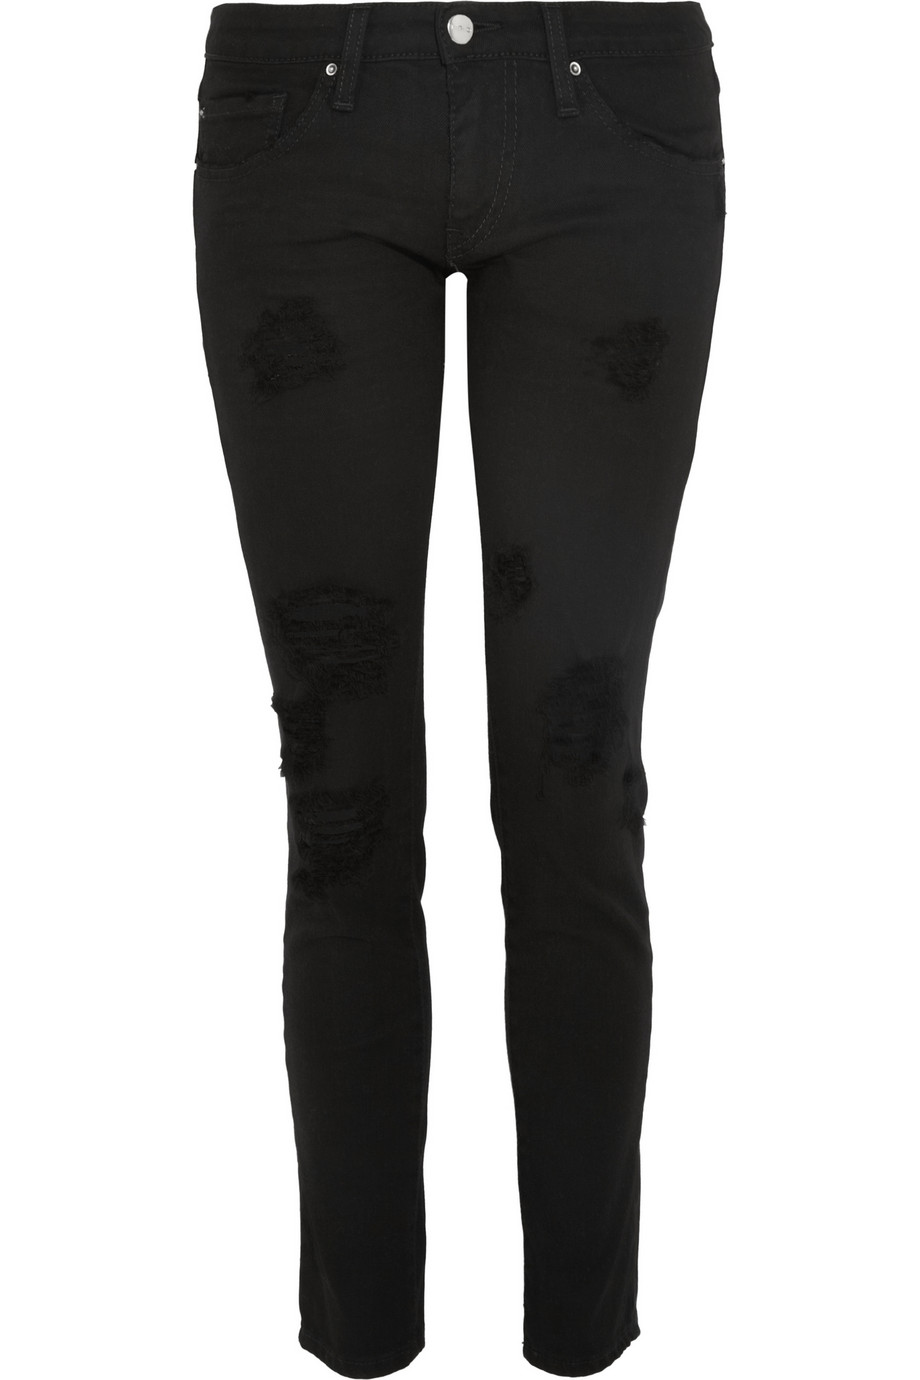 Rudolf distressed low-rise skinny jeans   IRO   THE OUTNET